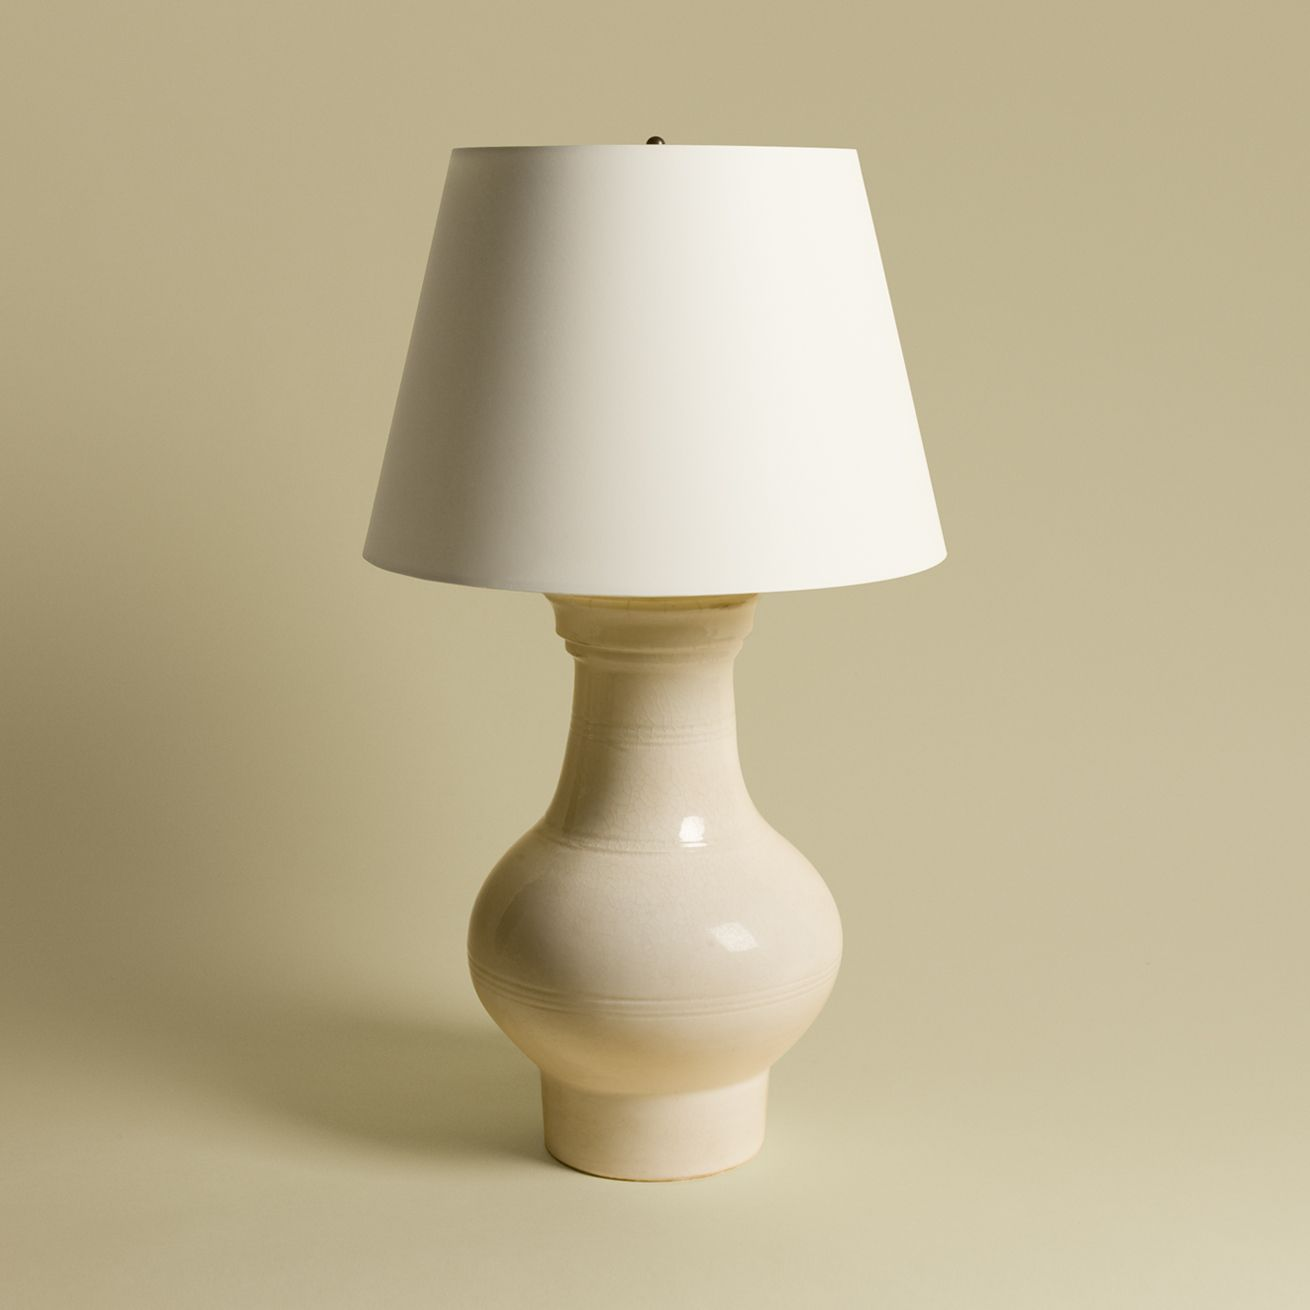 Clic Chinese Design In This Rose Tarlow Lamp Available